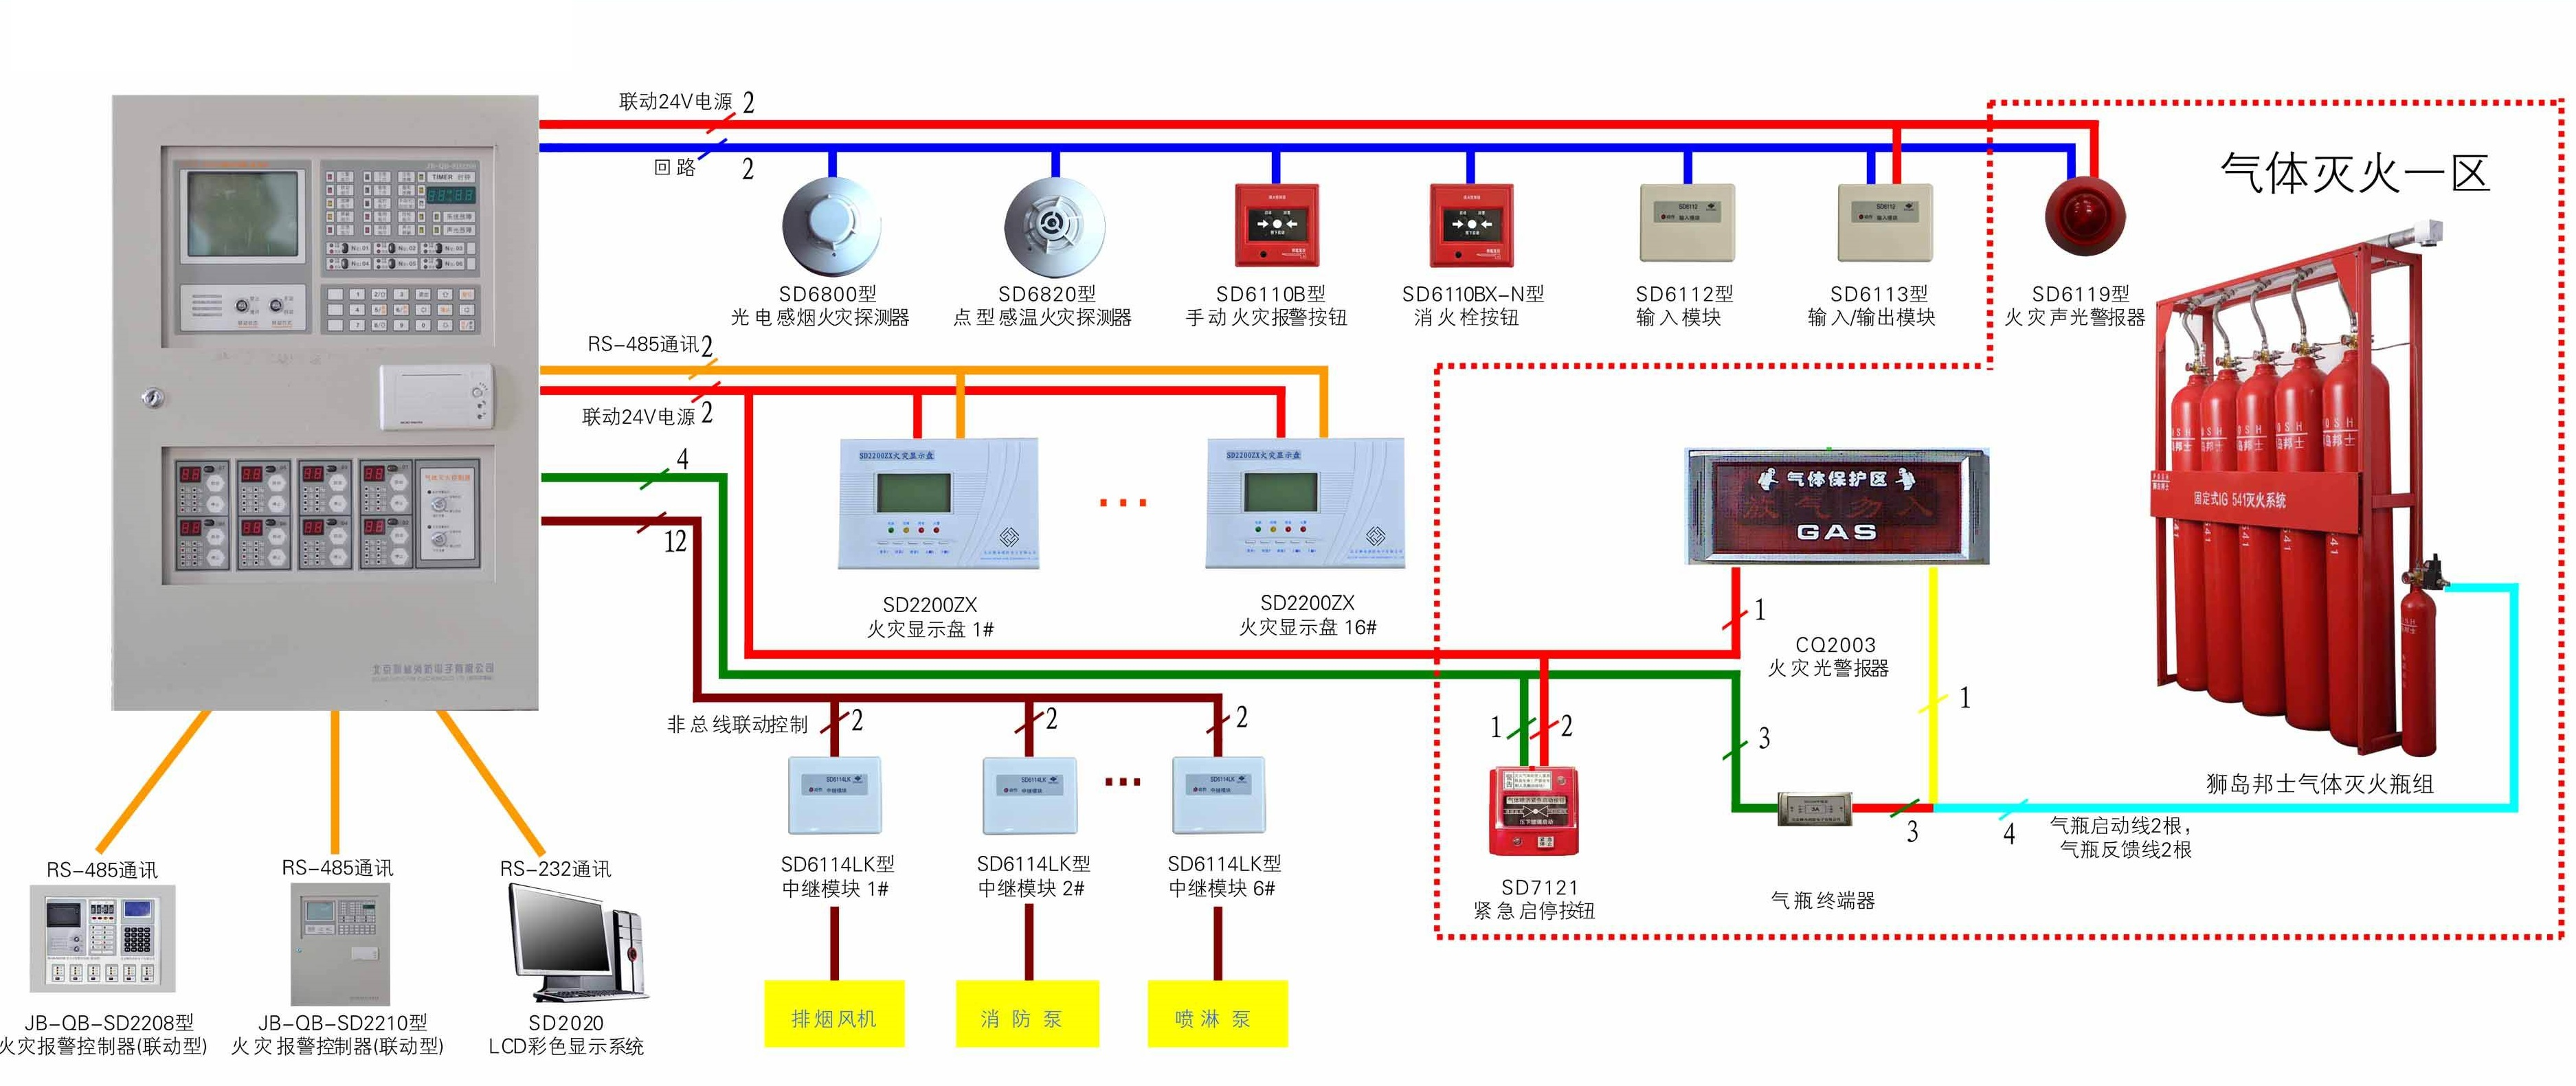 fire alarm controller karr alarm 2040 wiring diagram wiring diagram and schematic design karr 4040a alarm electrical wiring diagram at mifinder.co